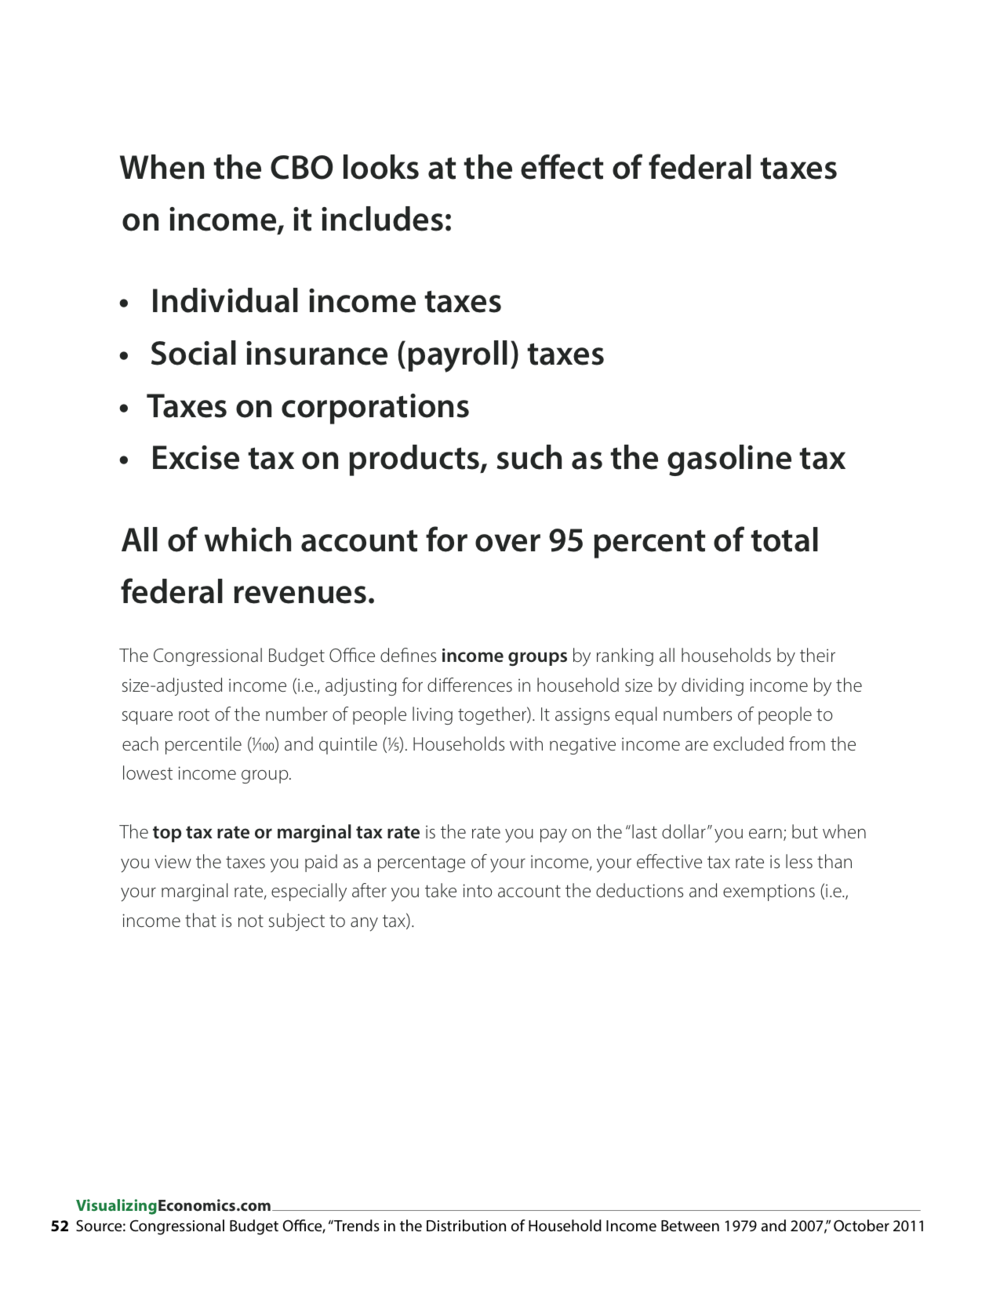 IncomeGuide_2013_Jan17_RGB_page 52_52.png